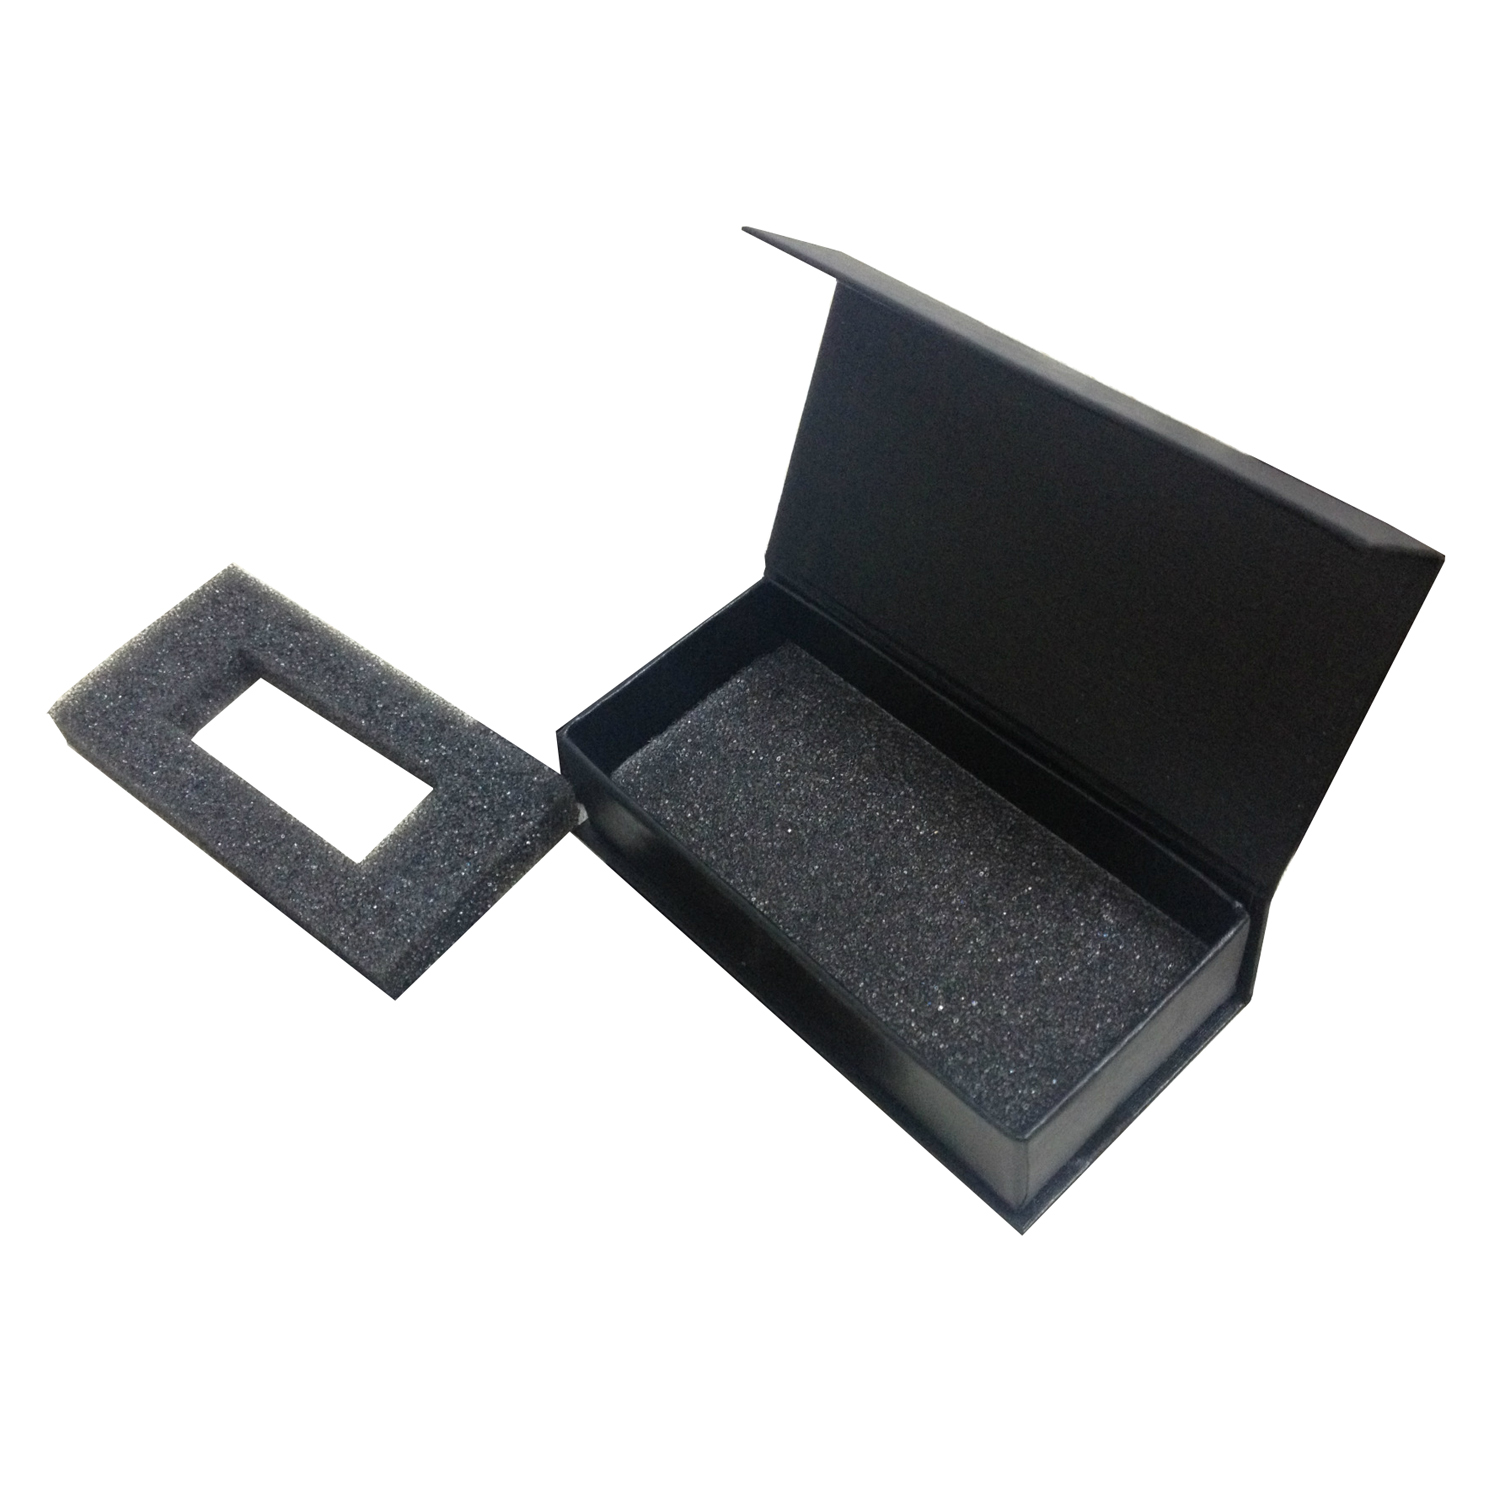 Eco Friendly Custom Black Paper Cardboard Magnet USB <strong>Box</strong> With Black Foam Insert